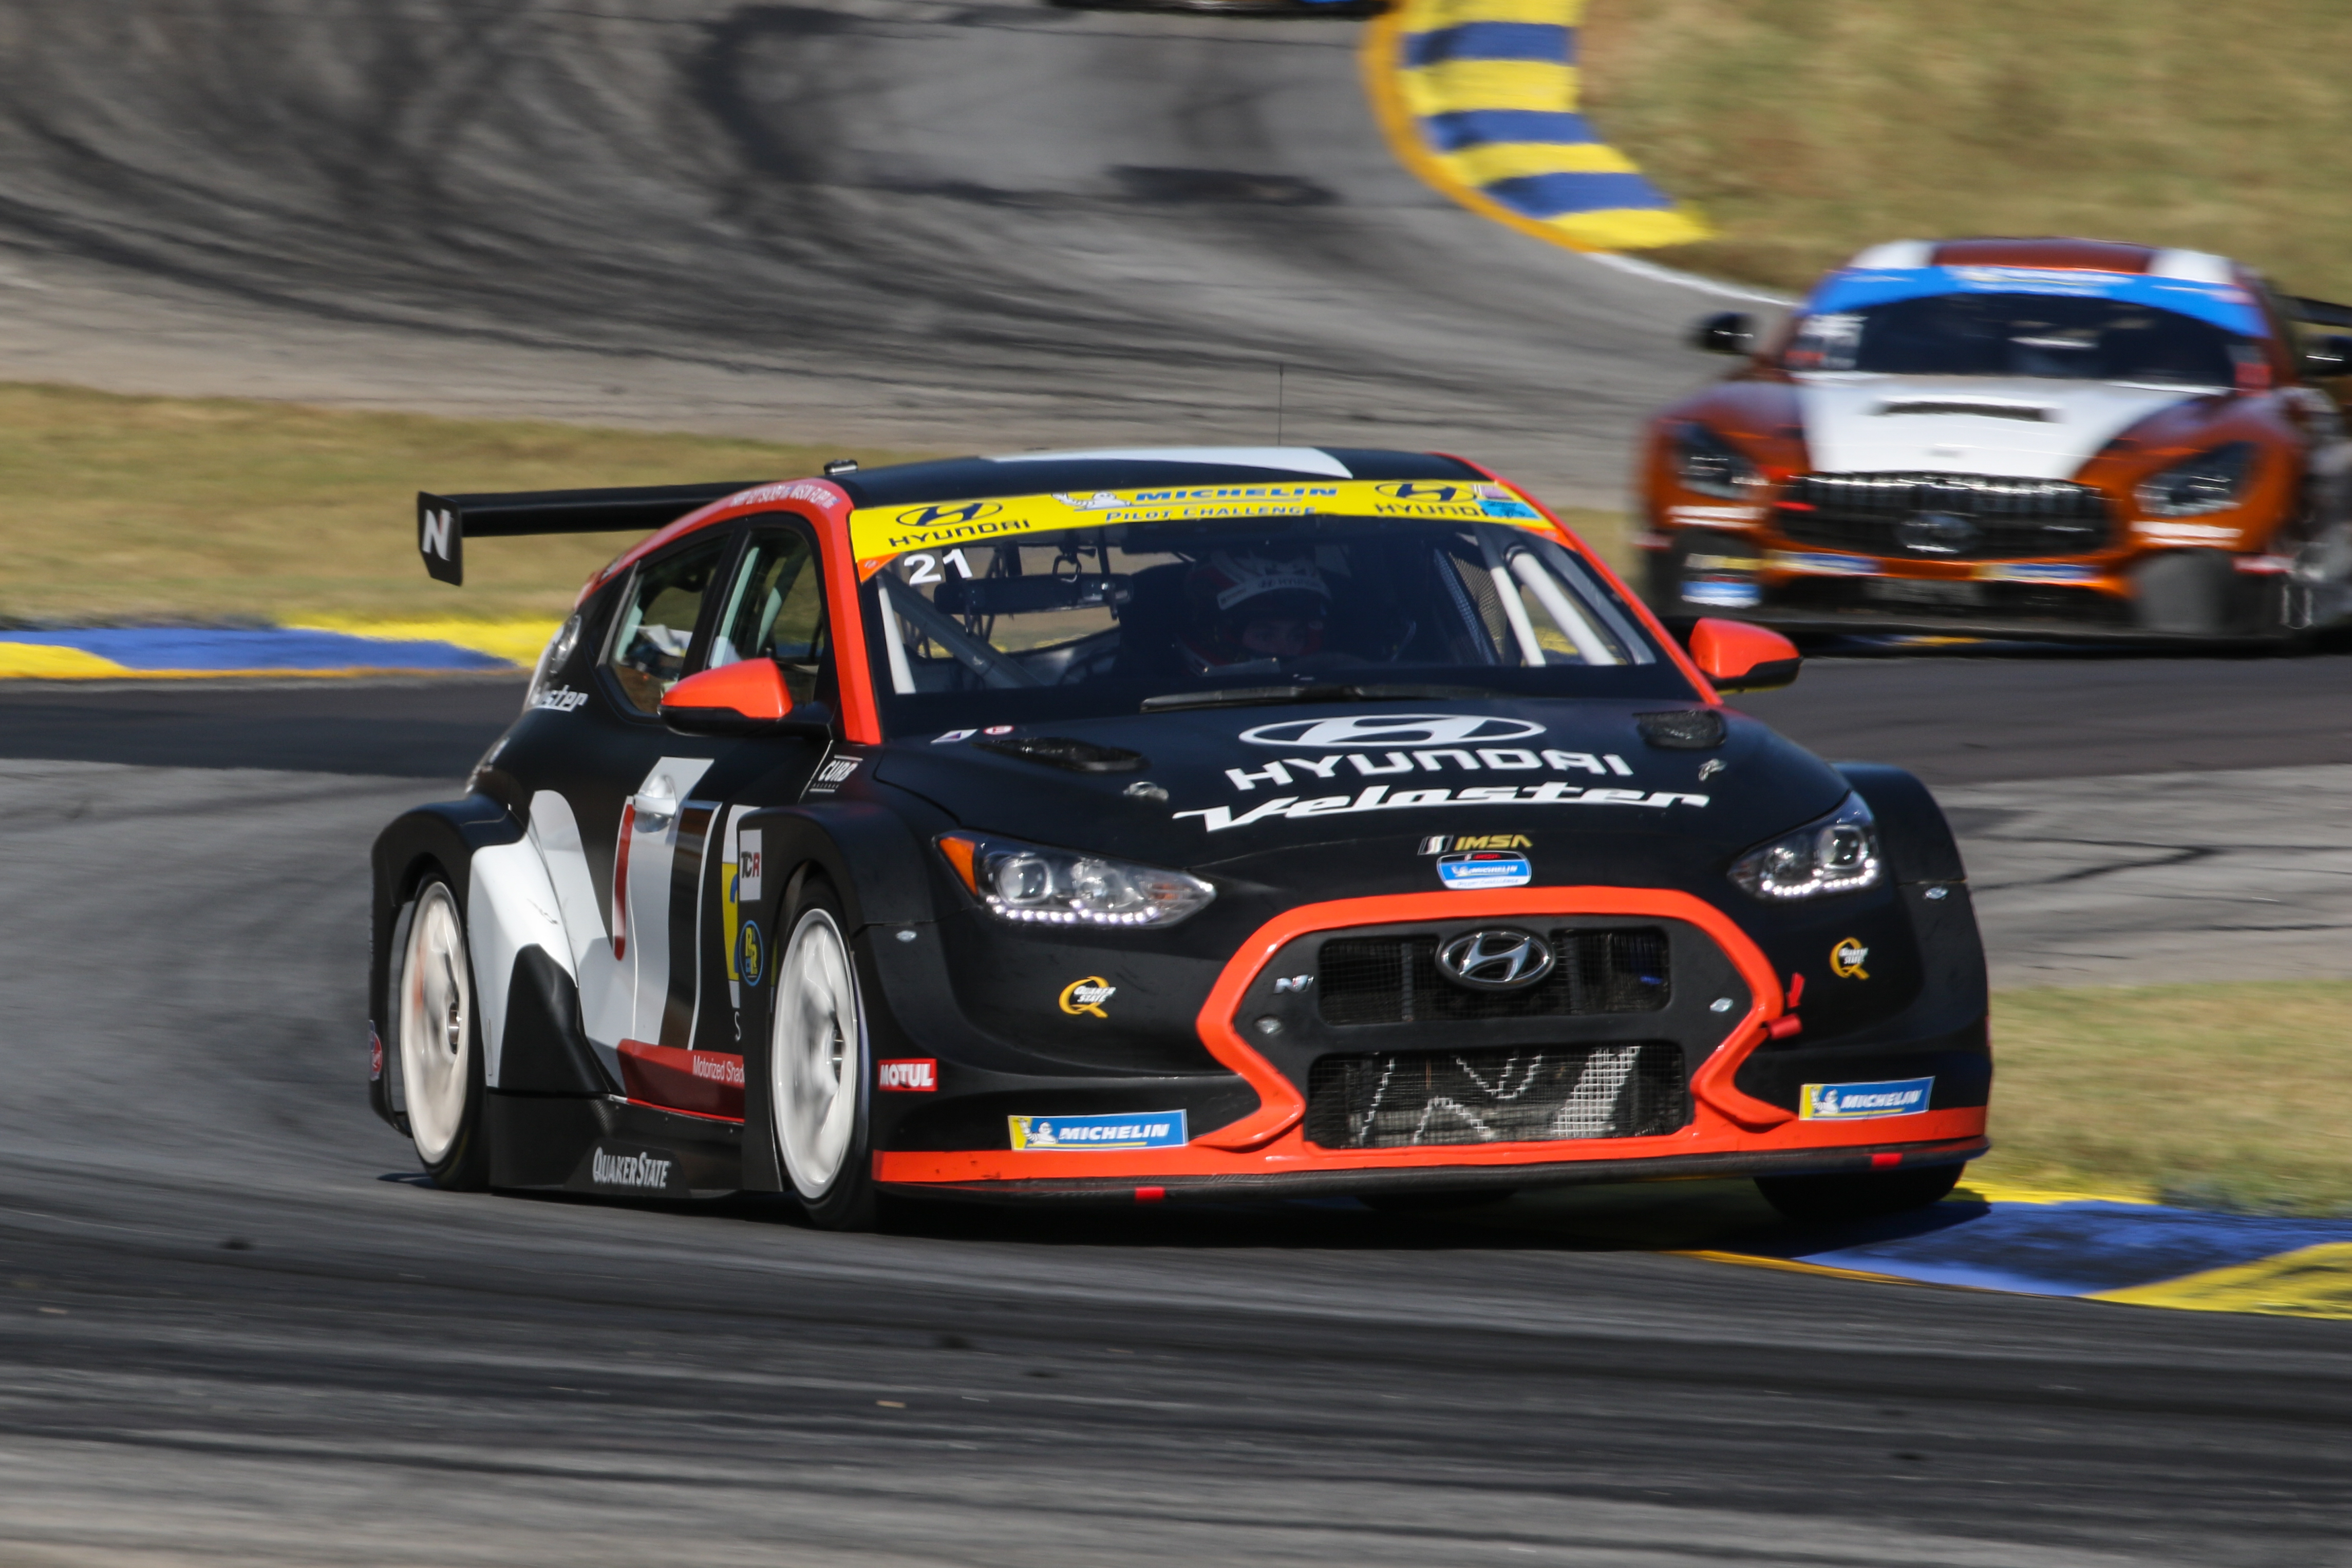 Mason Filippi/Harry Gottsacker - Veloster N TCR - Road Atlanta